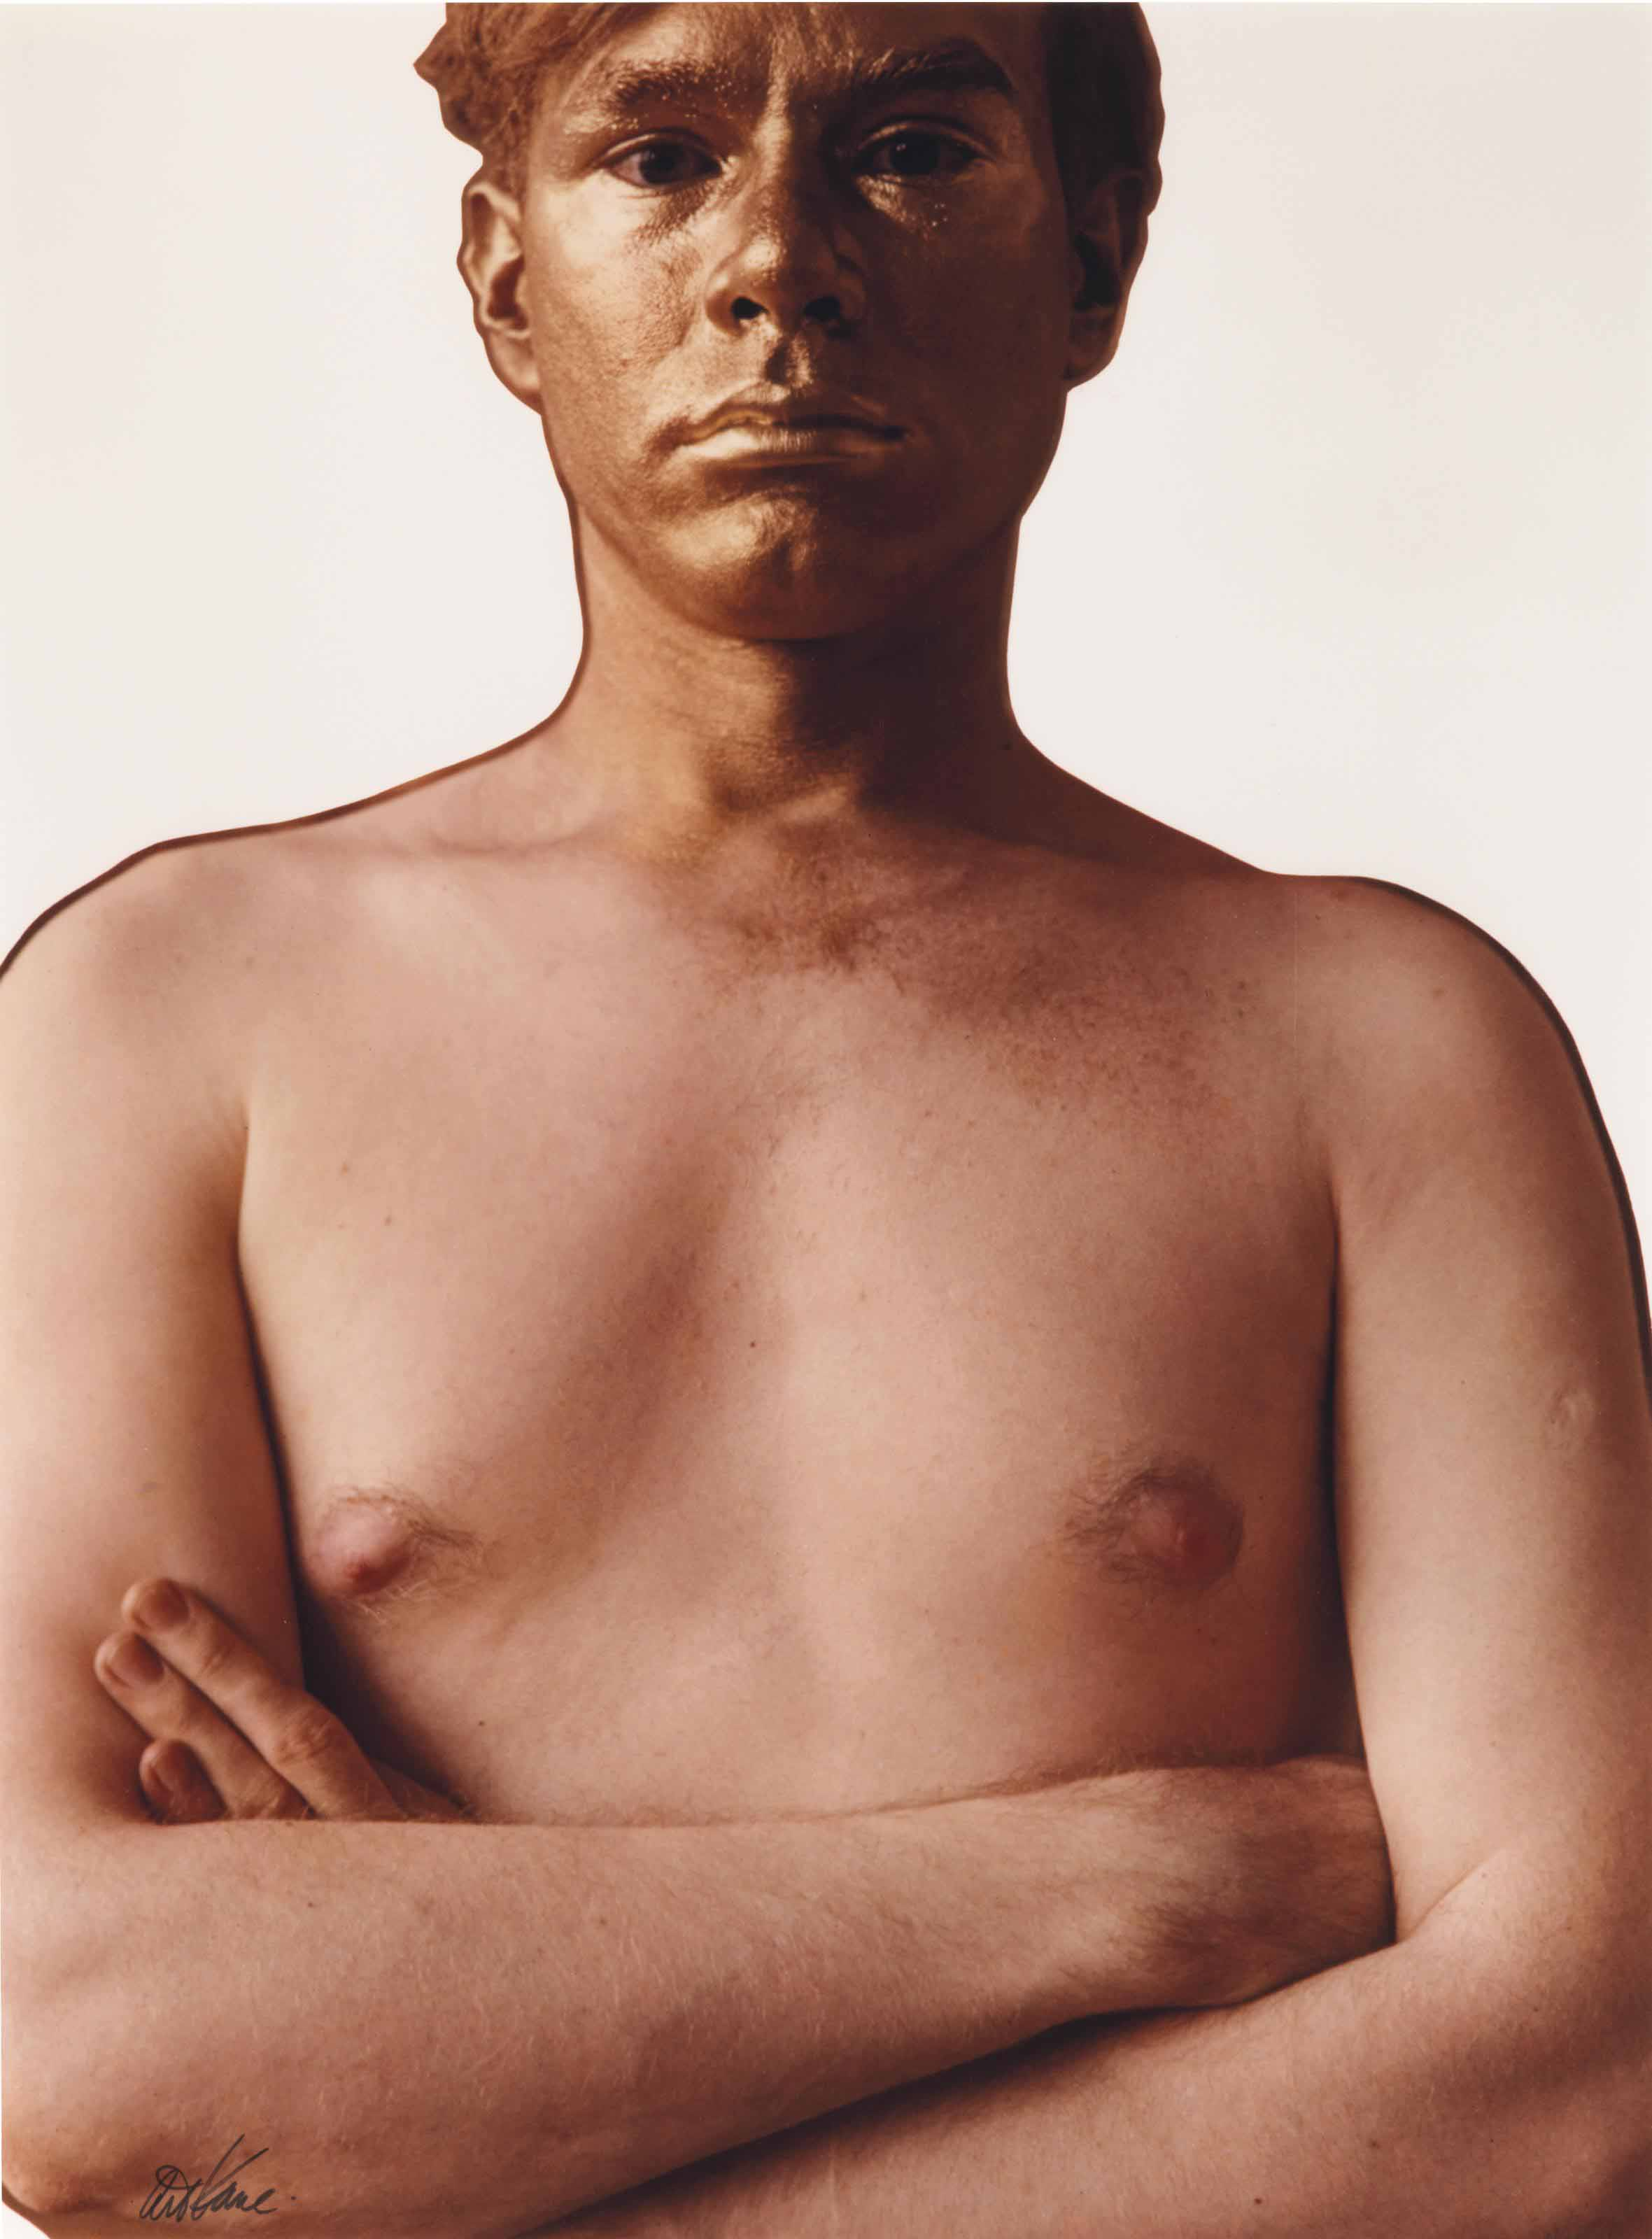 Andy Warhol as the Golden Boy, 1962